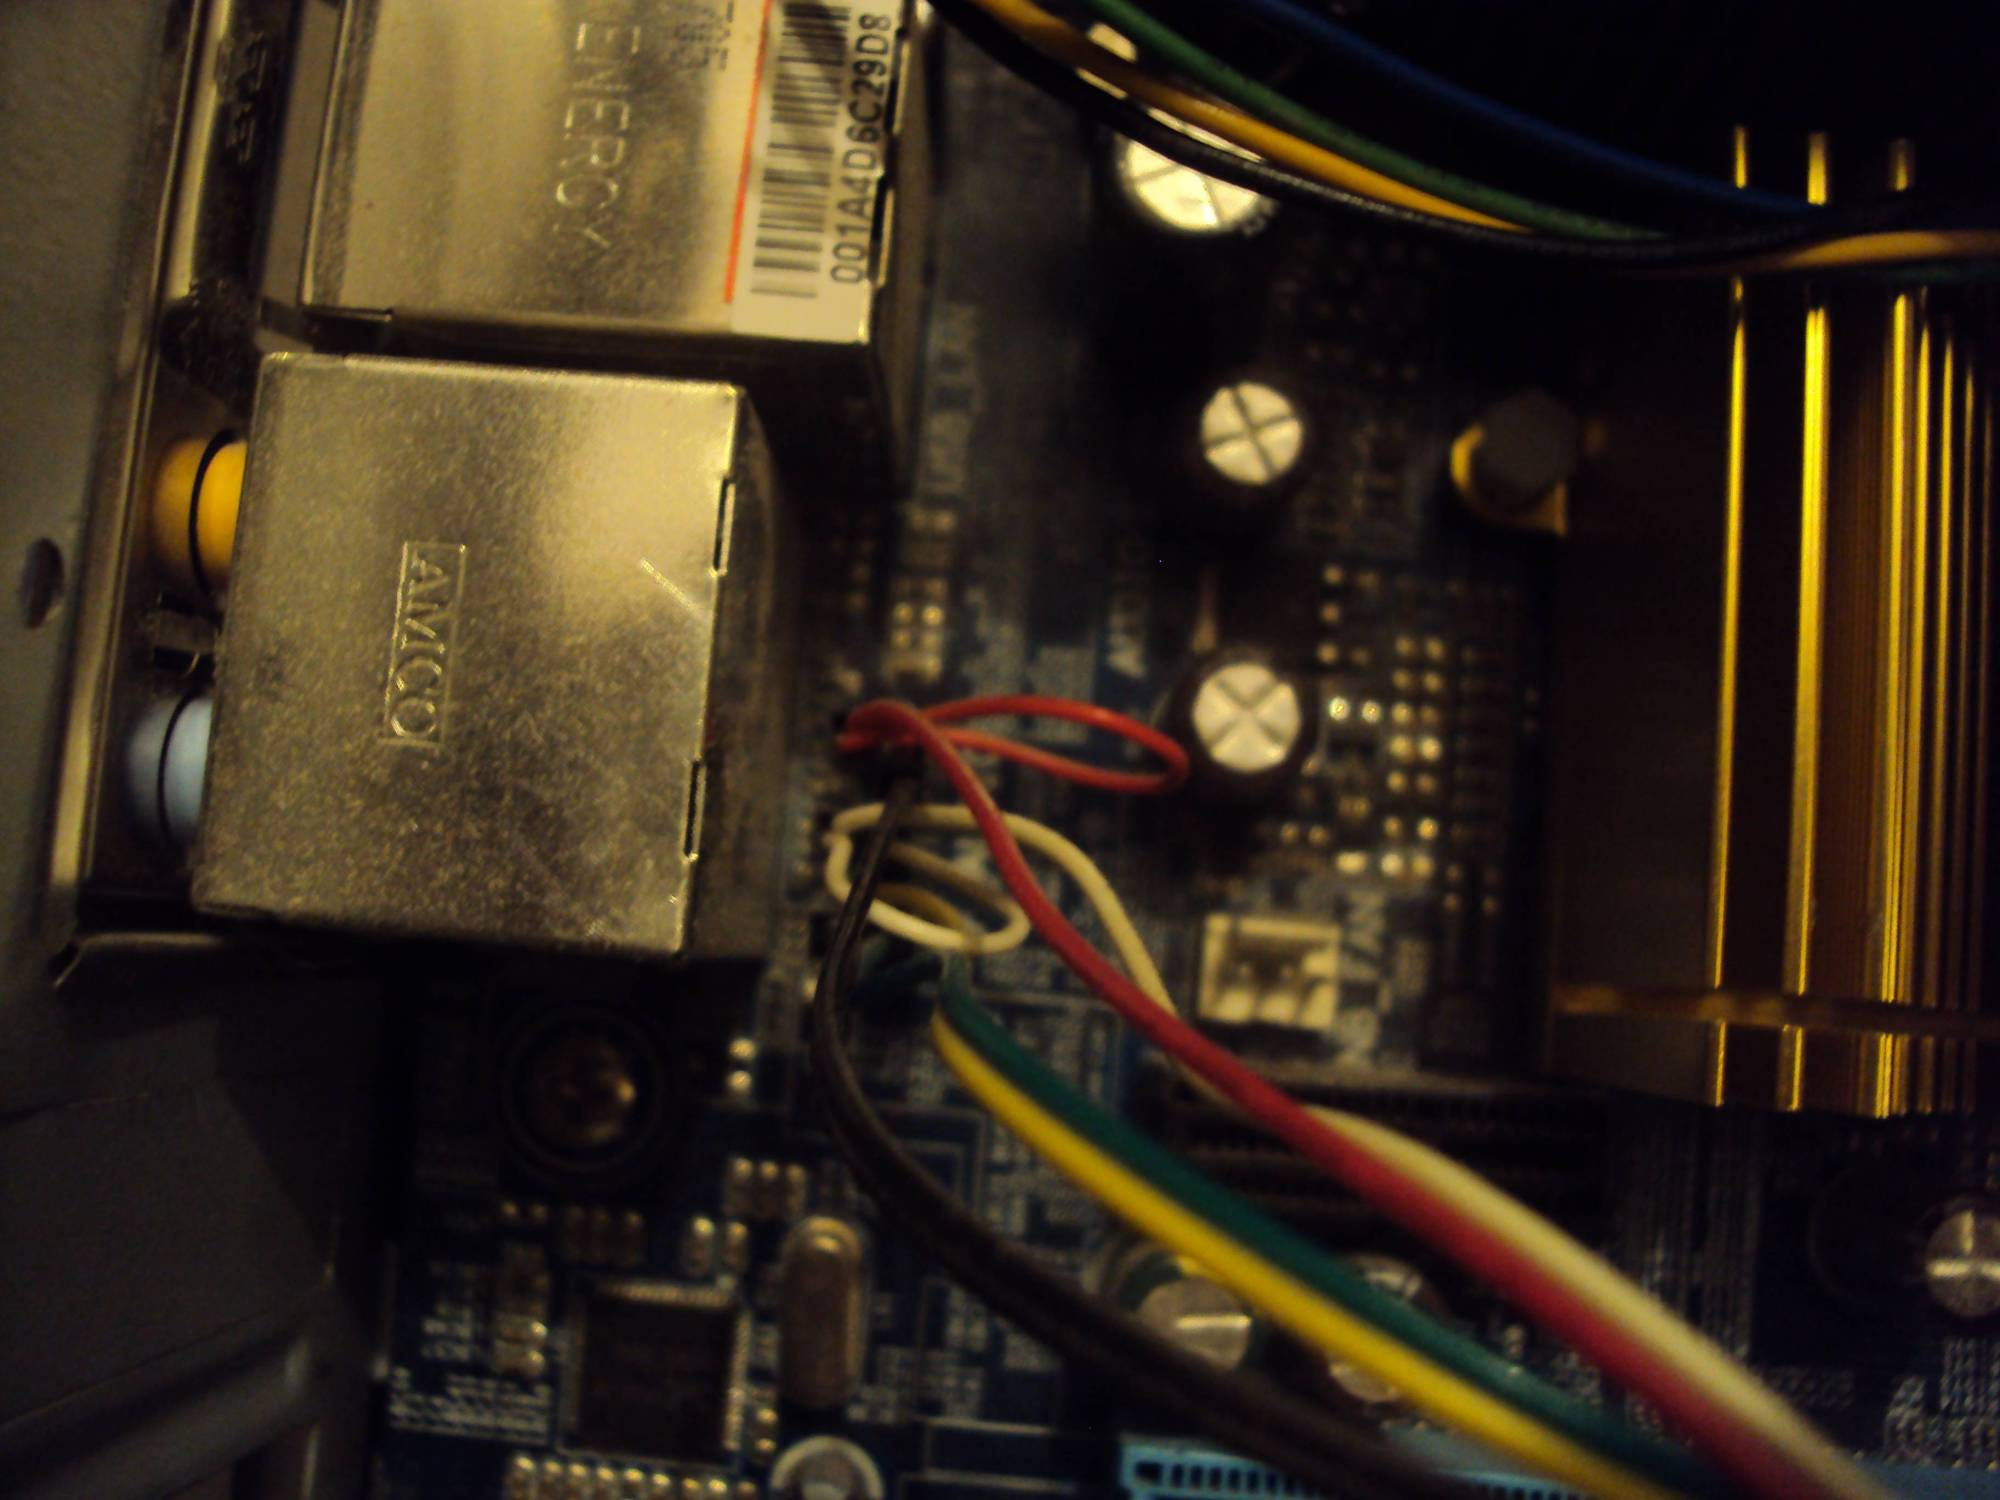 hight resolution of  enter image description here from front panel comes these wires